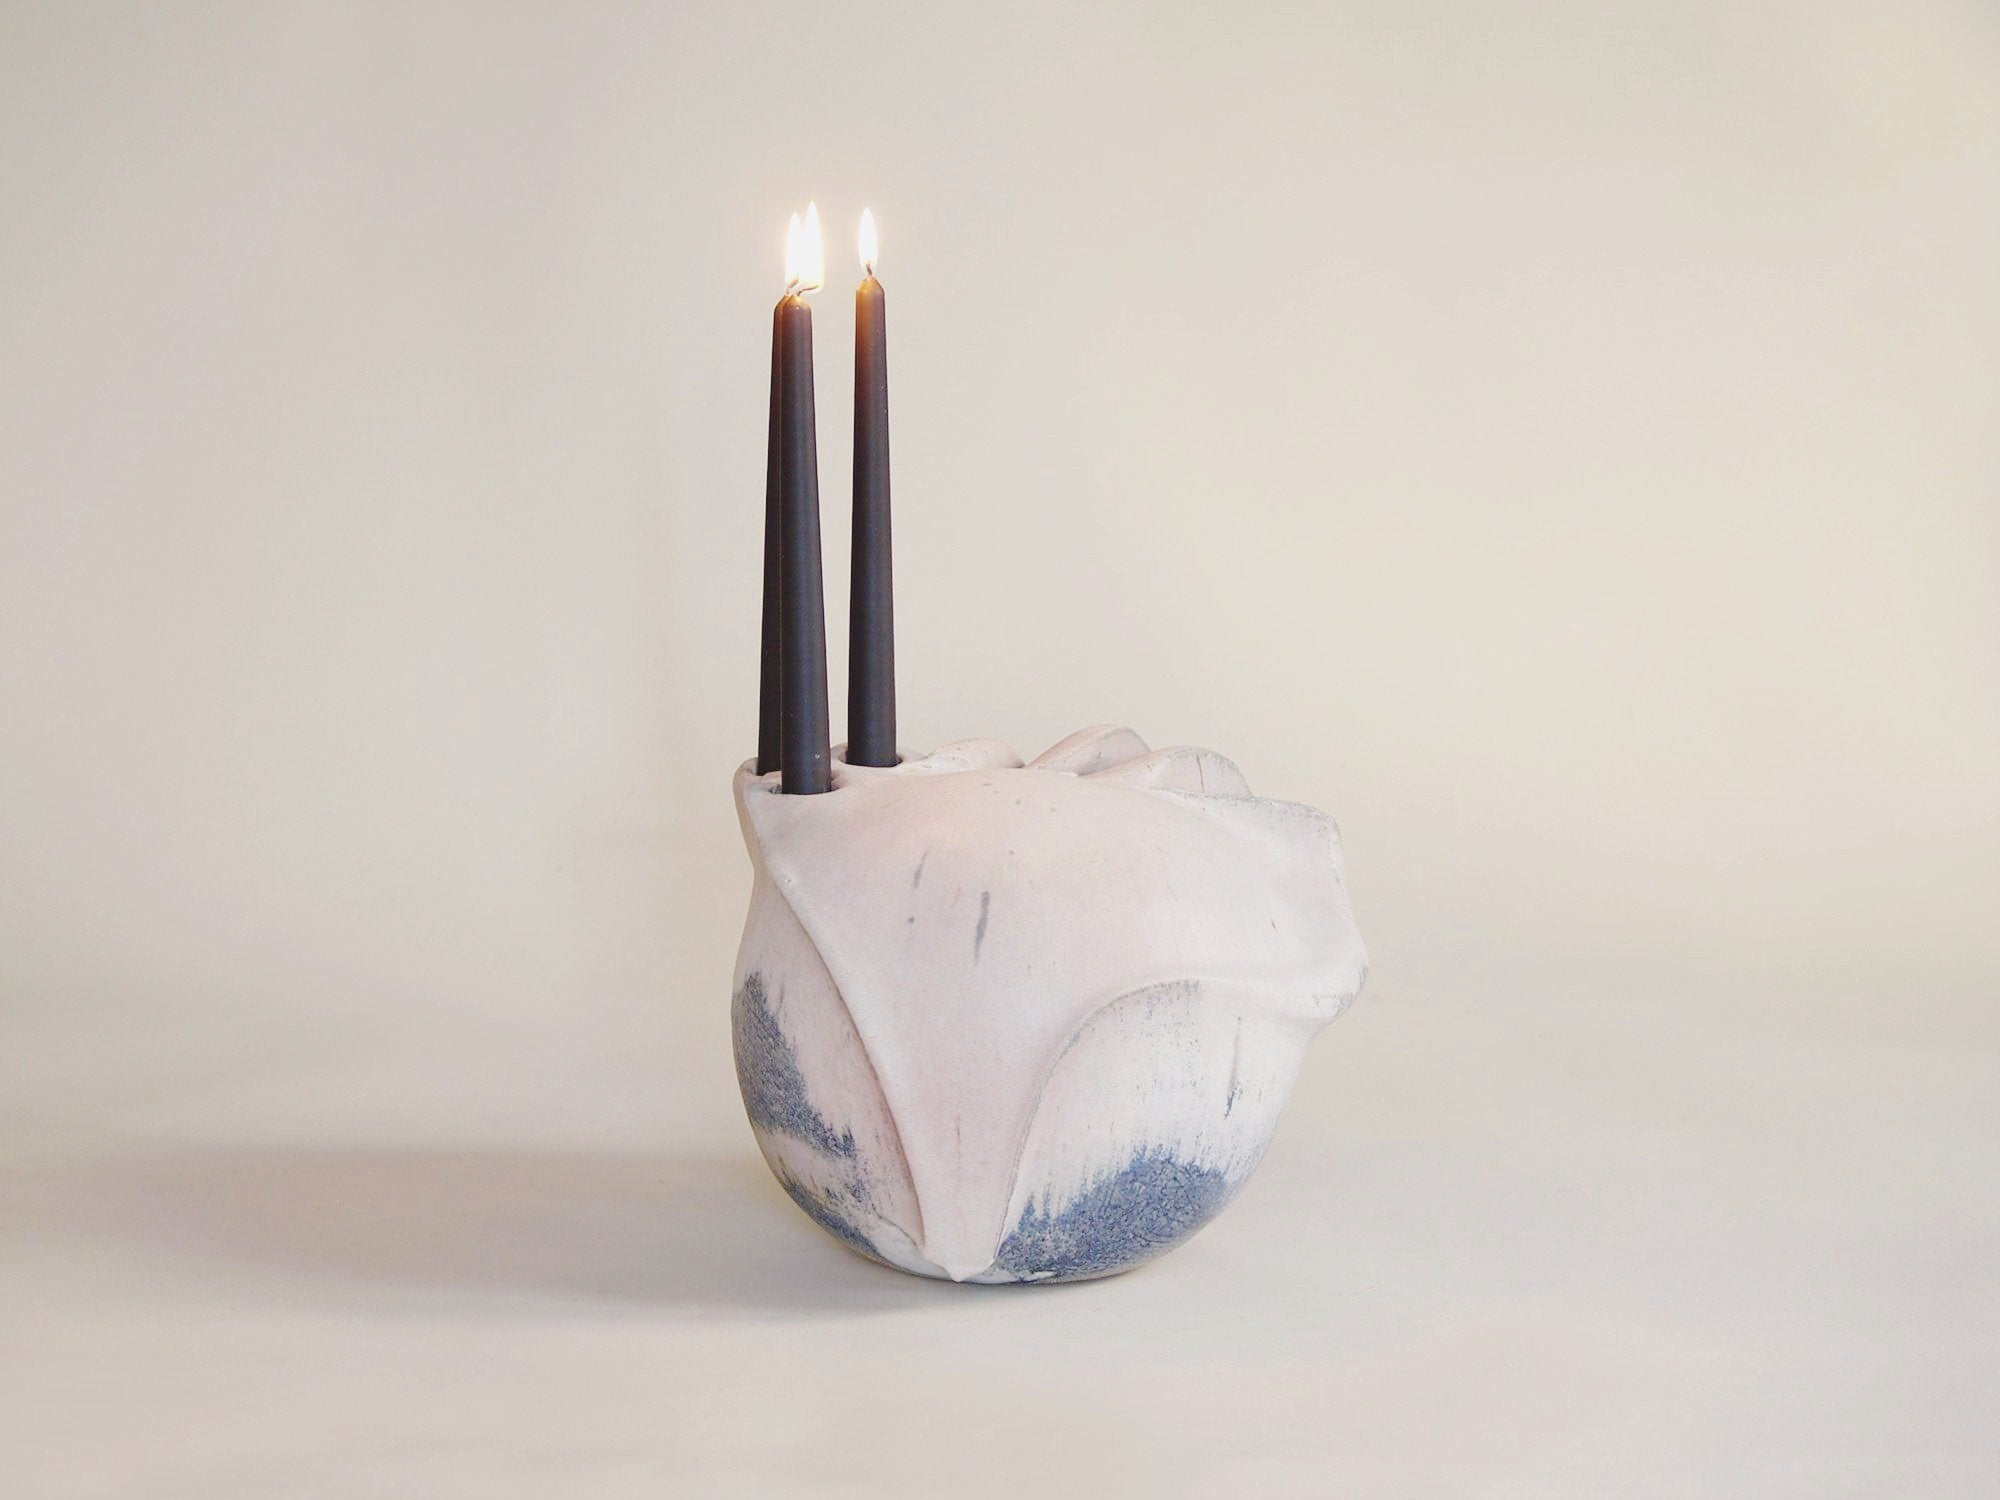 Sculpture / candélabre biomorphique en grès, Suisse (années 1970)..Sculptural stoneware candle holder, Switzerland (Circa 1960)